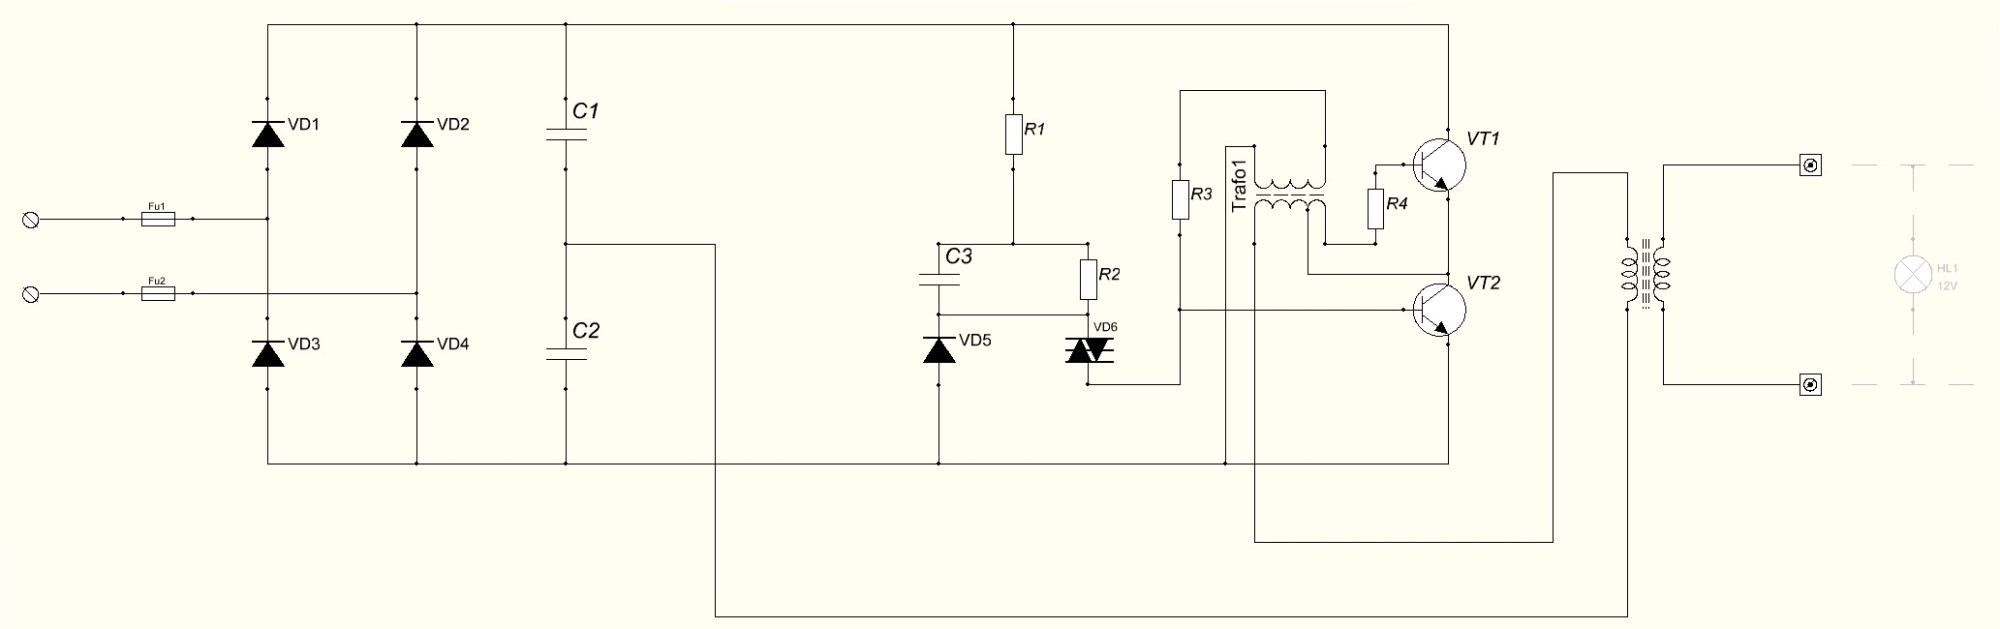 hight resolution of file wiring diagram of power supply for halogen lamps jpgfile wiring diagram of power supply for